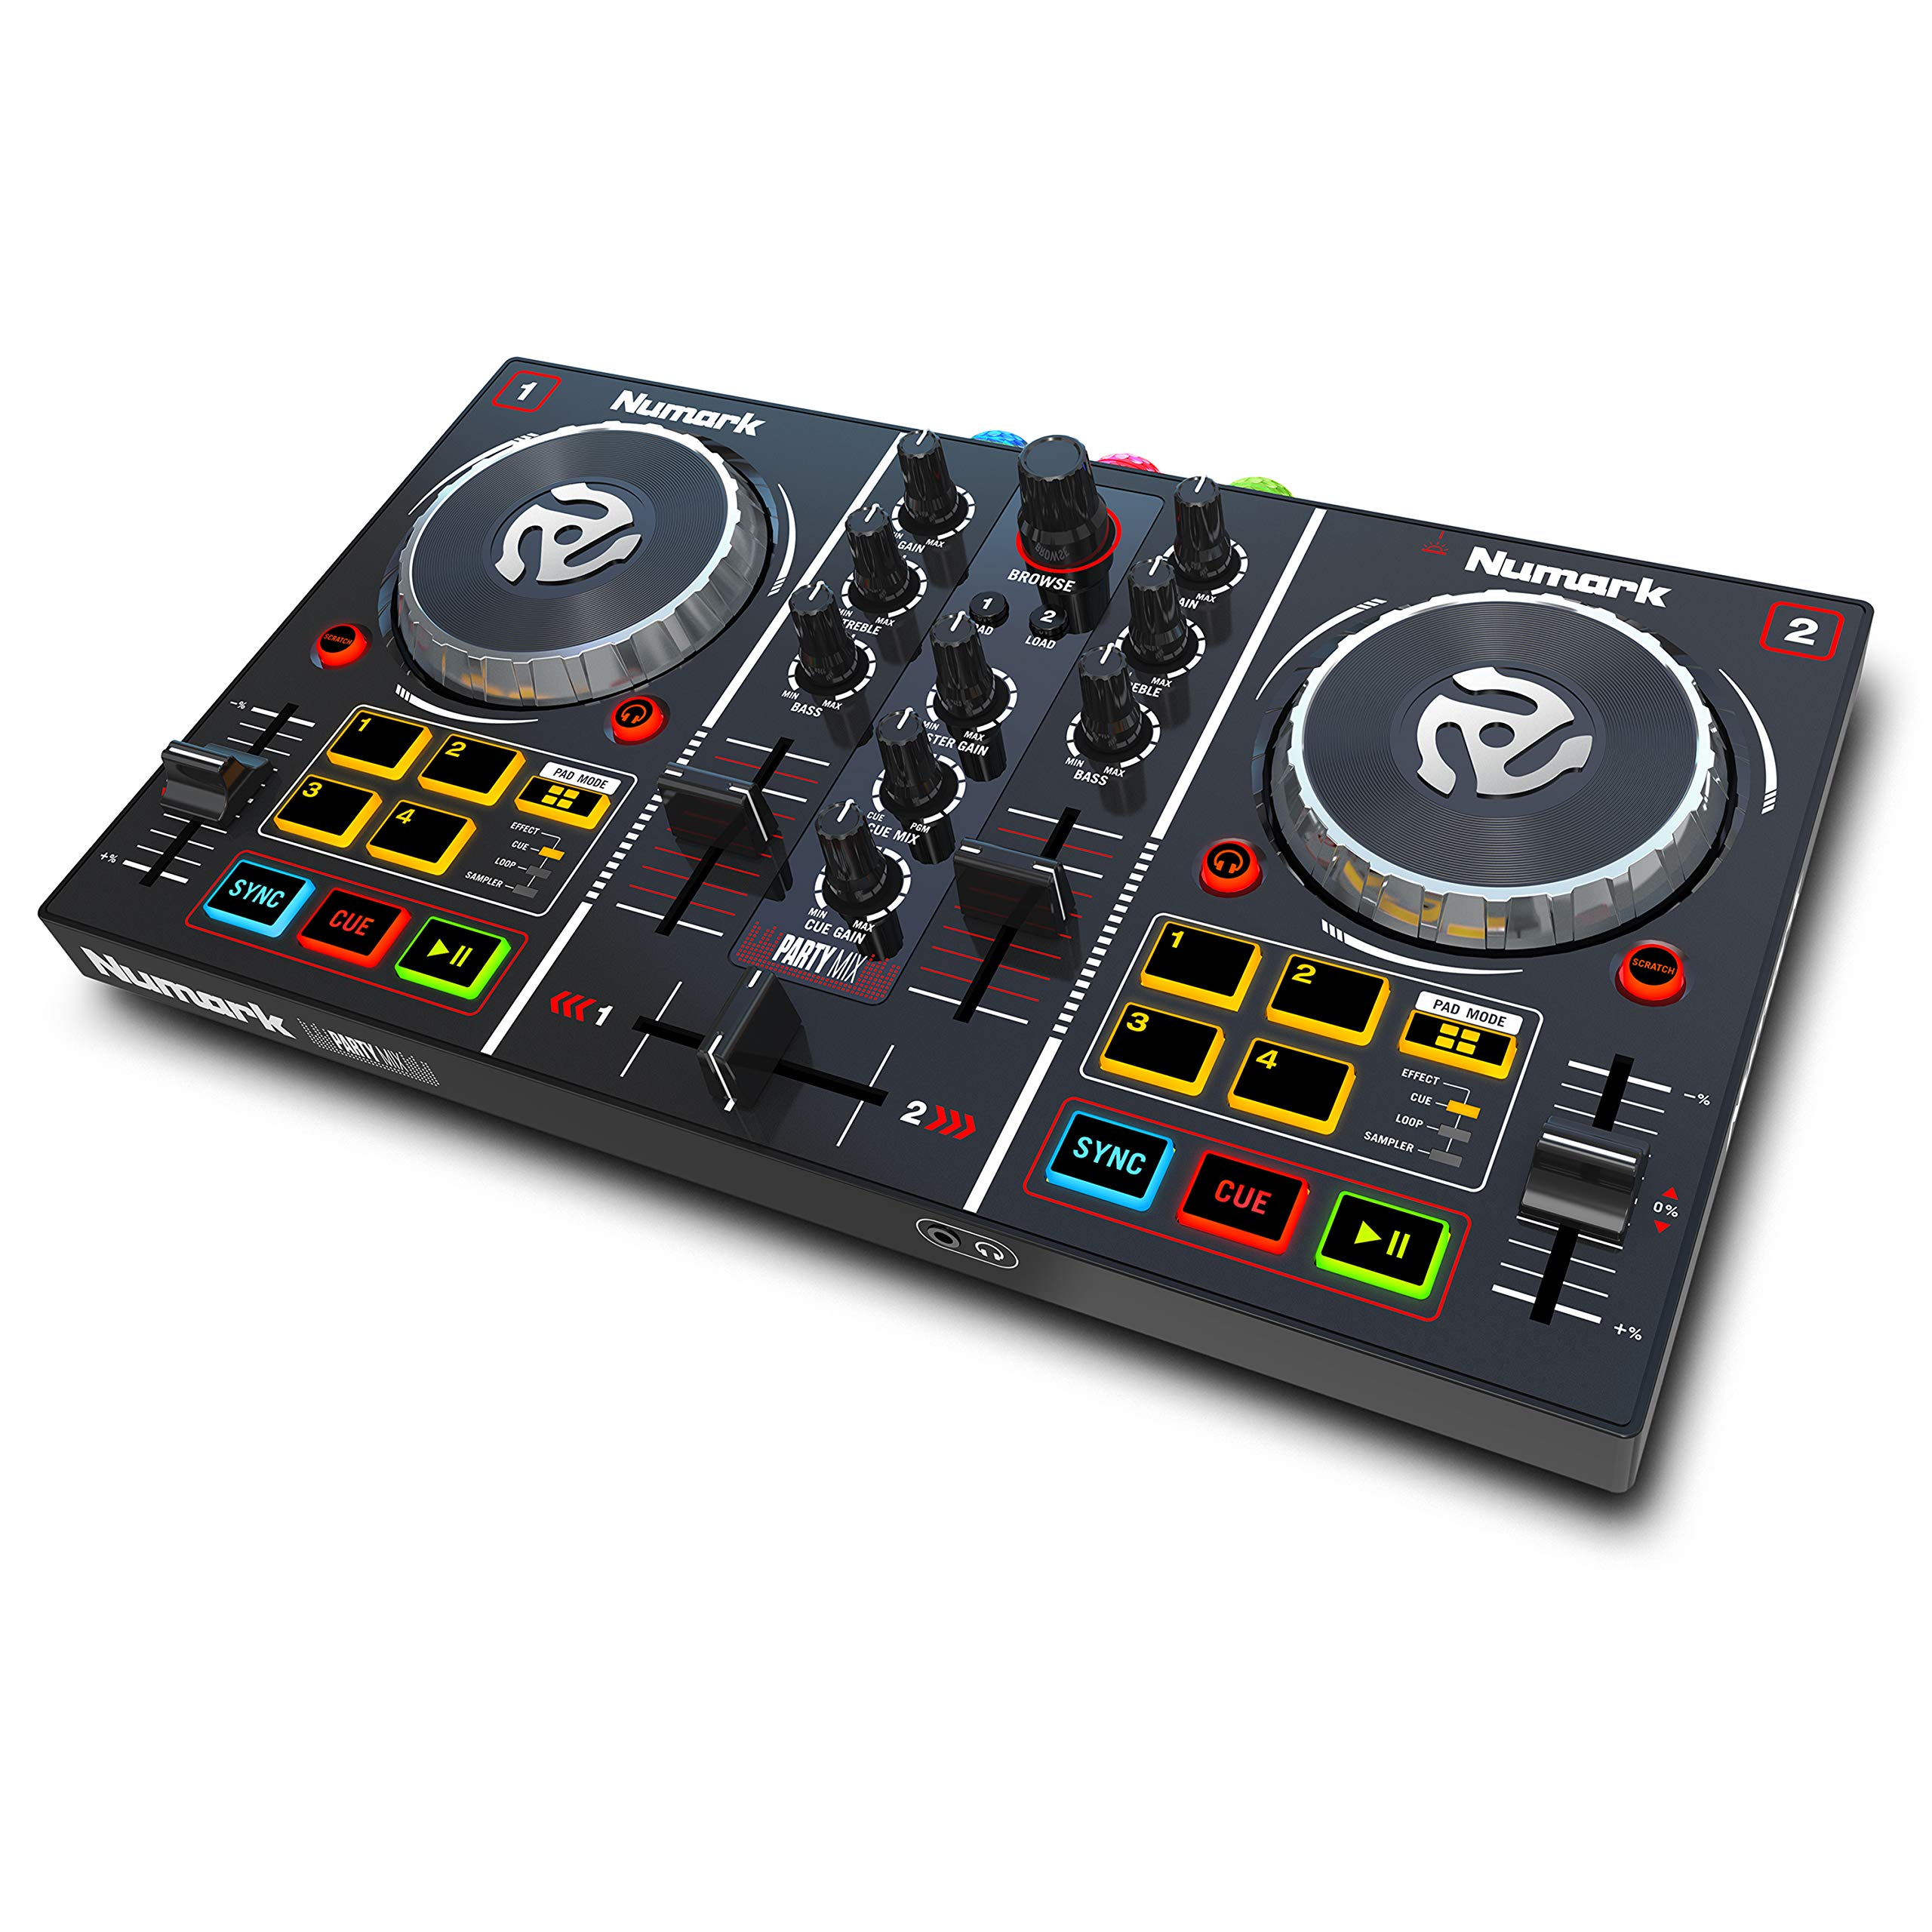 Numark Party Mix, Complete DJ Controller Set for Serato DJ with 2 Decks, Party Lights, Headphone Output, Performance Pads and Crossfader/Mixer